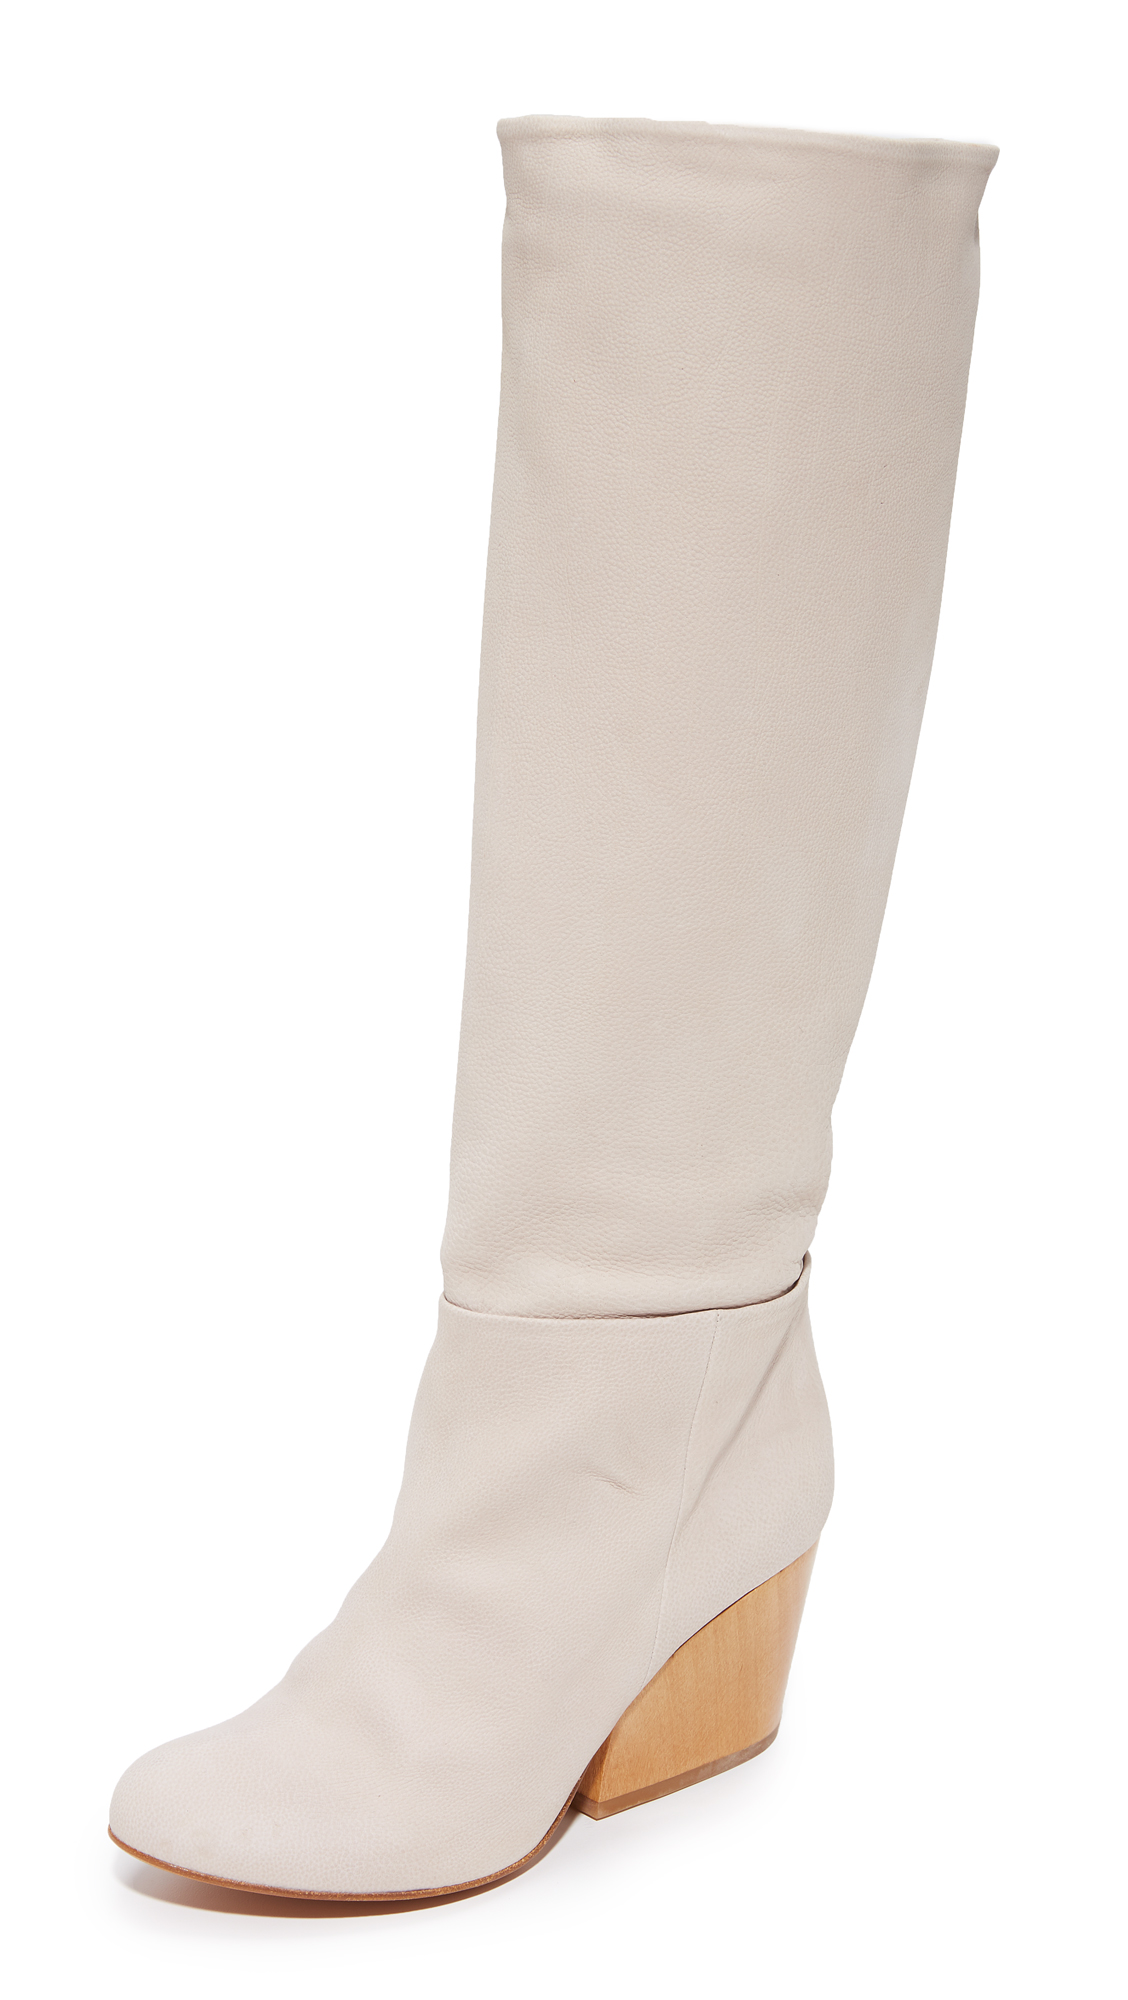 Coclico Shoes Bly Knee High Boots - Grain Beige